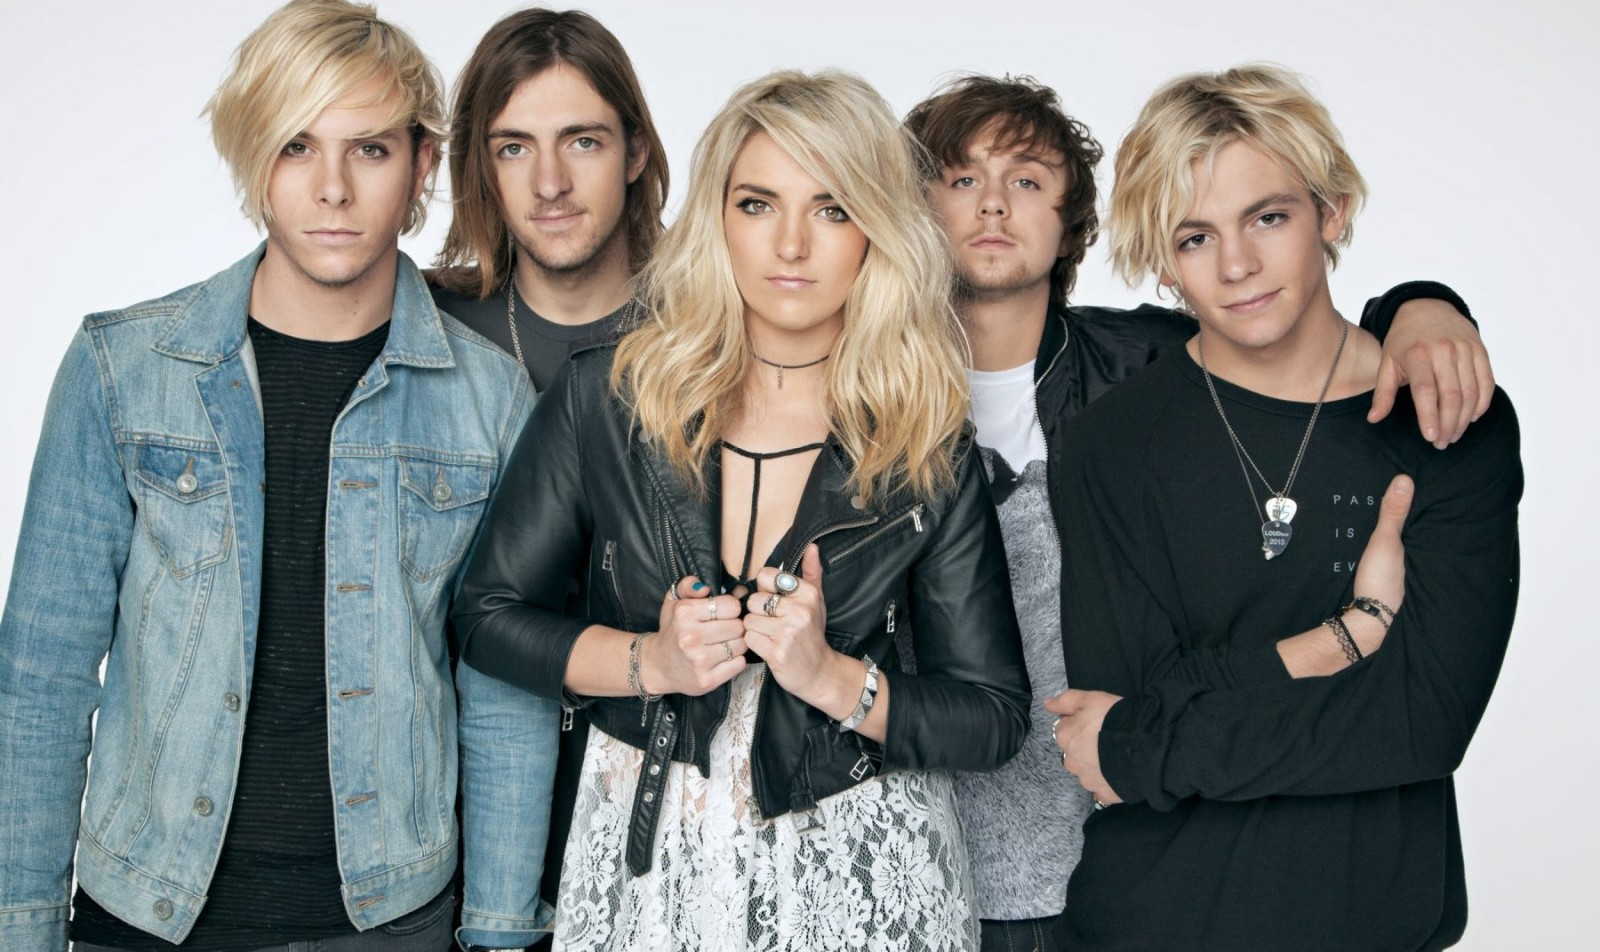 R5 performs at Kiss the Summer Hello on Saturday at Canalside.